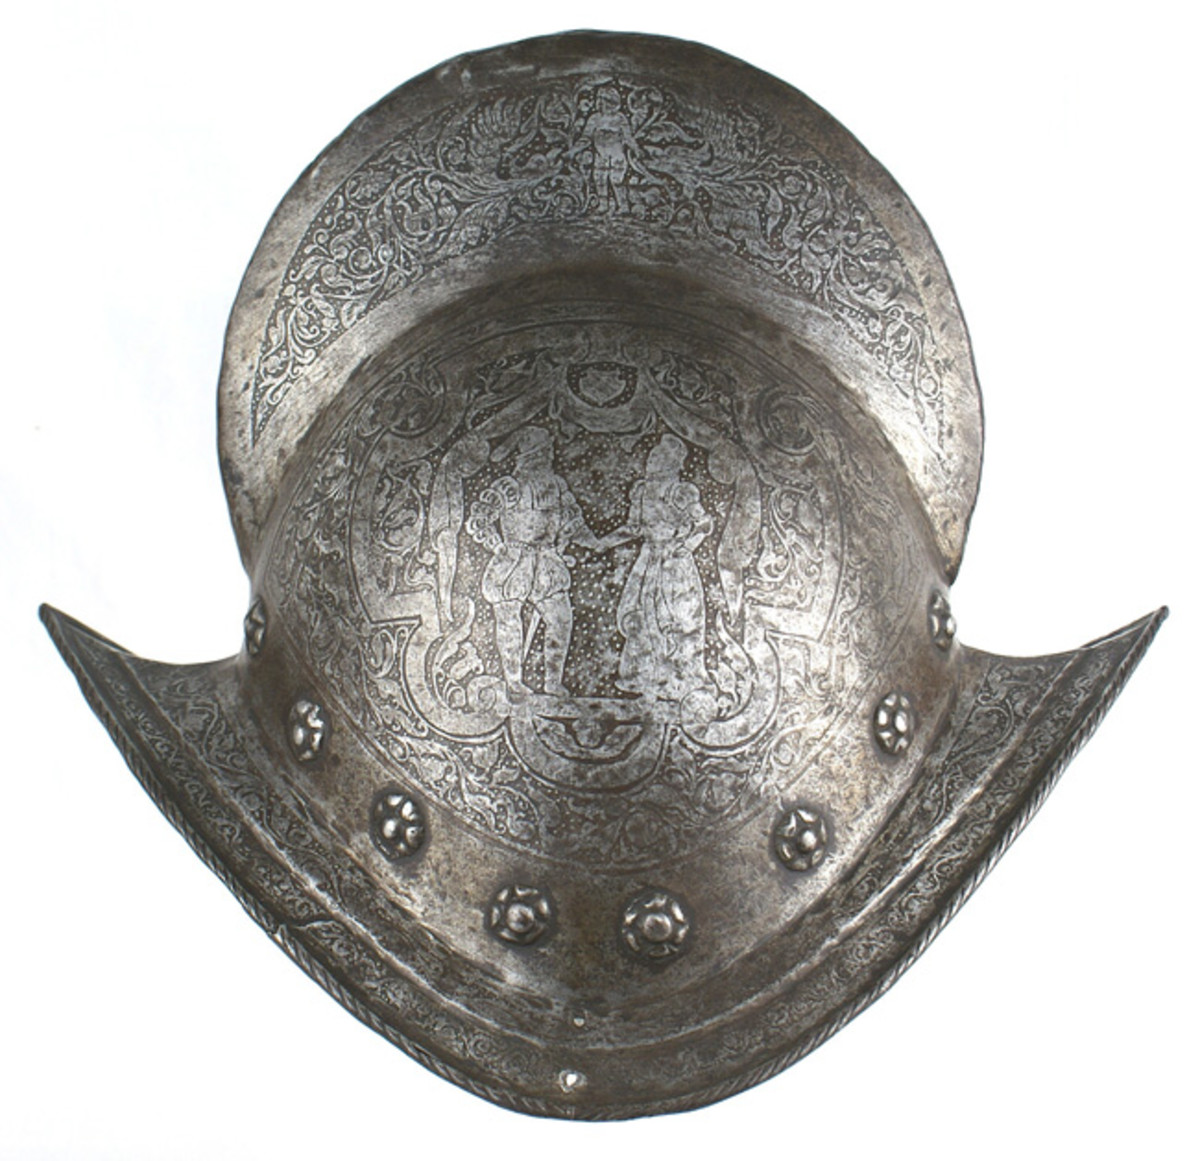 Rare, 16th century Spanish or Italian combed morion, or tall dome-shaped infantry helmet, profusely etched with floral designs ($7,675).